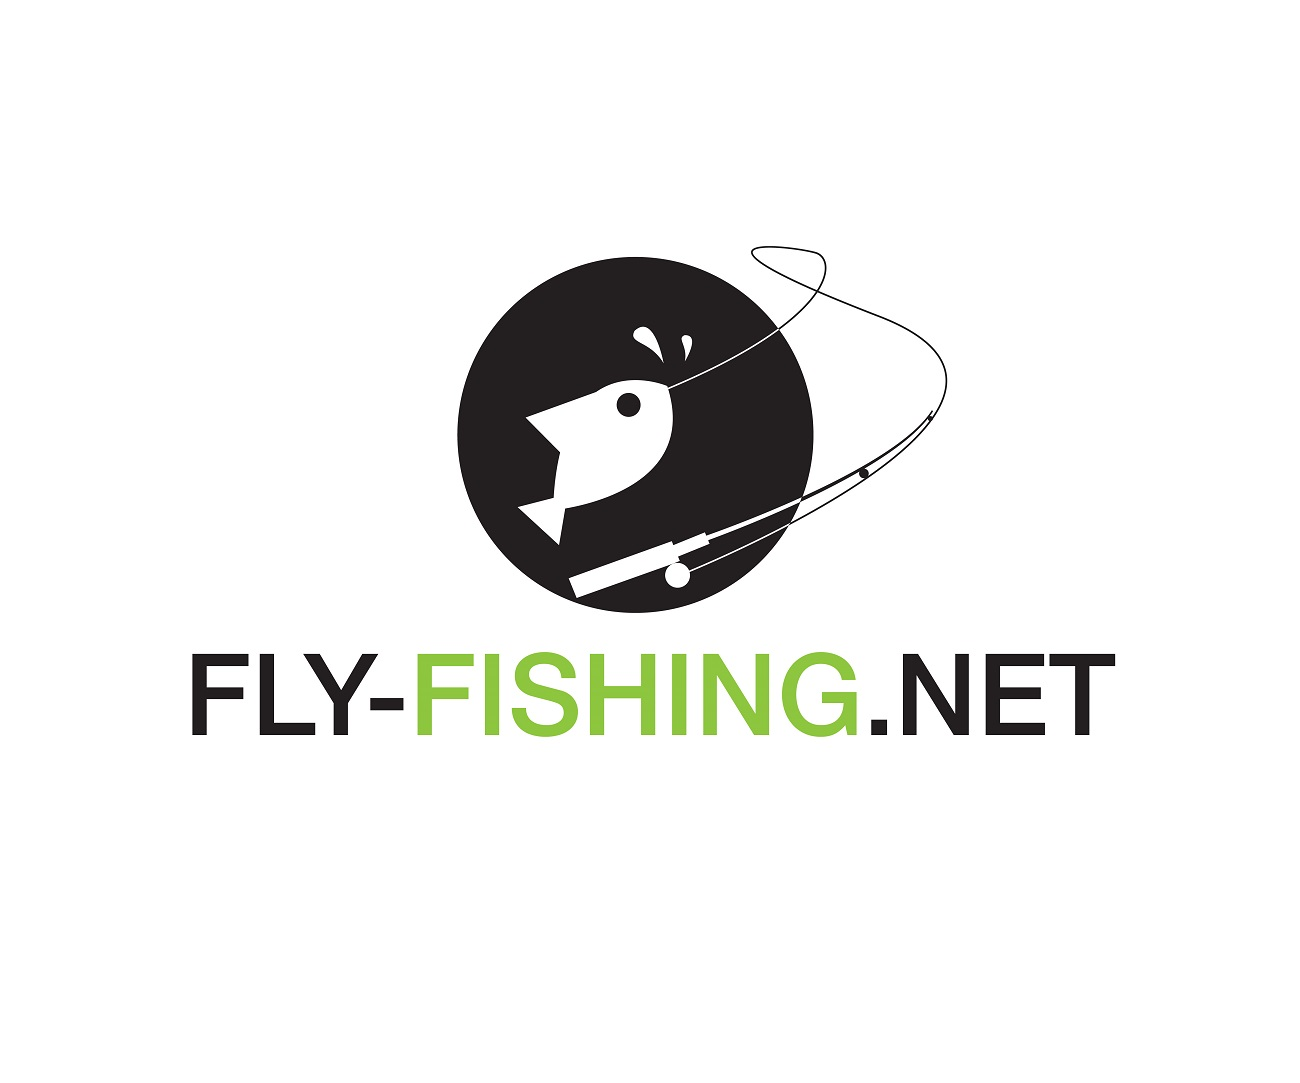 Logo Design by jhunzkie24 - Entry No. 70 in the Logo Design Contest Artistic Logo Design for fly-fishing.net.